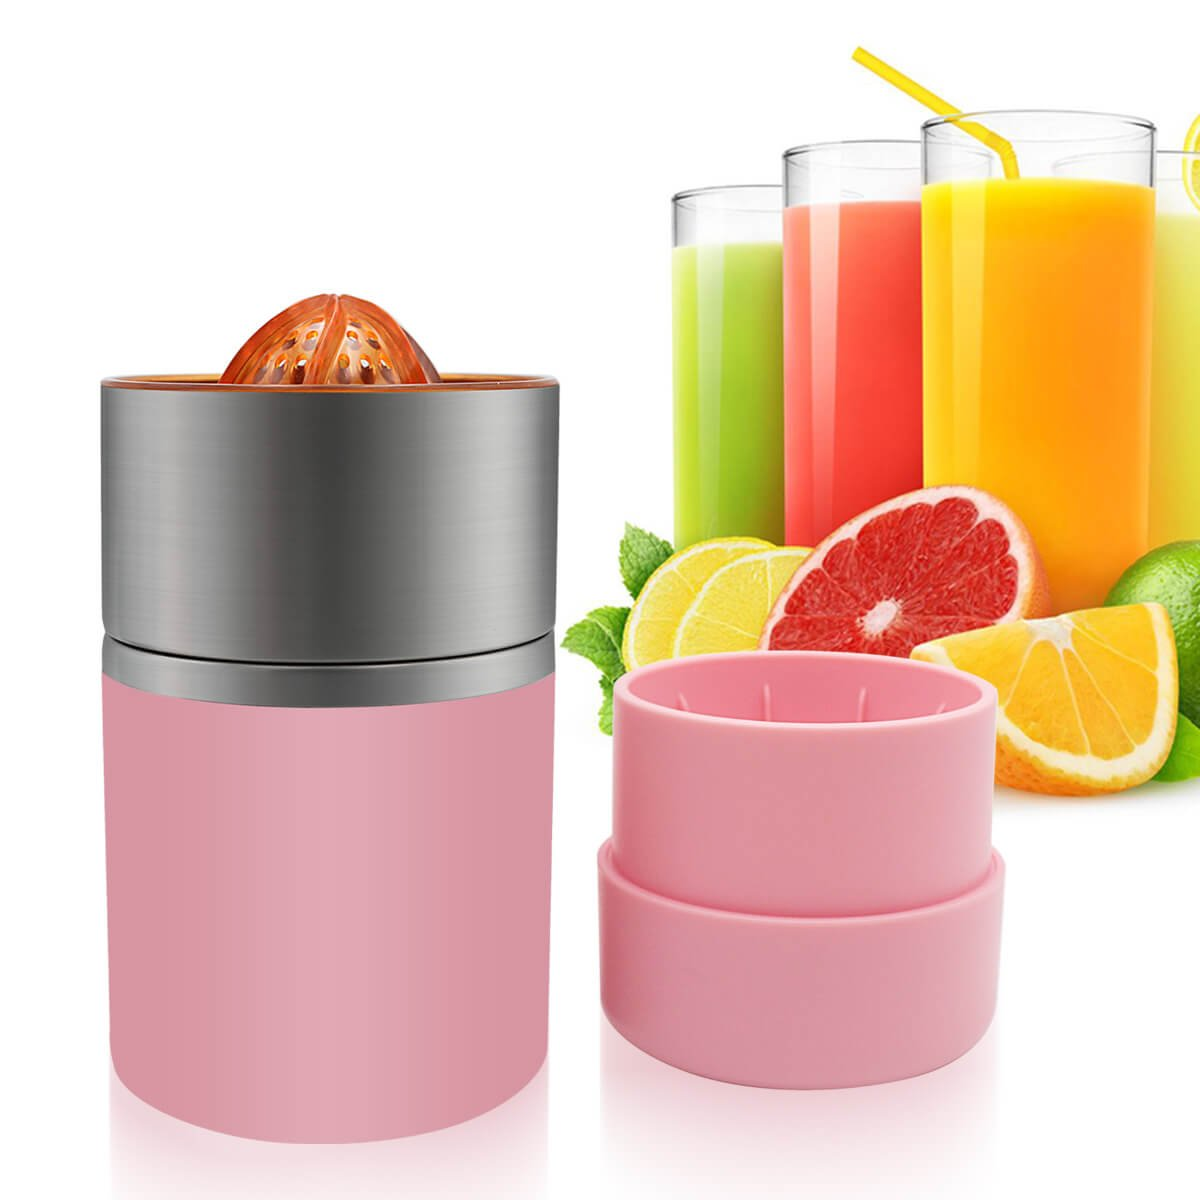 Manual Juicer Portable Citrus Juicer with Strainer and Stainless Steel Container for Oranges Lemons Pink Color Epro